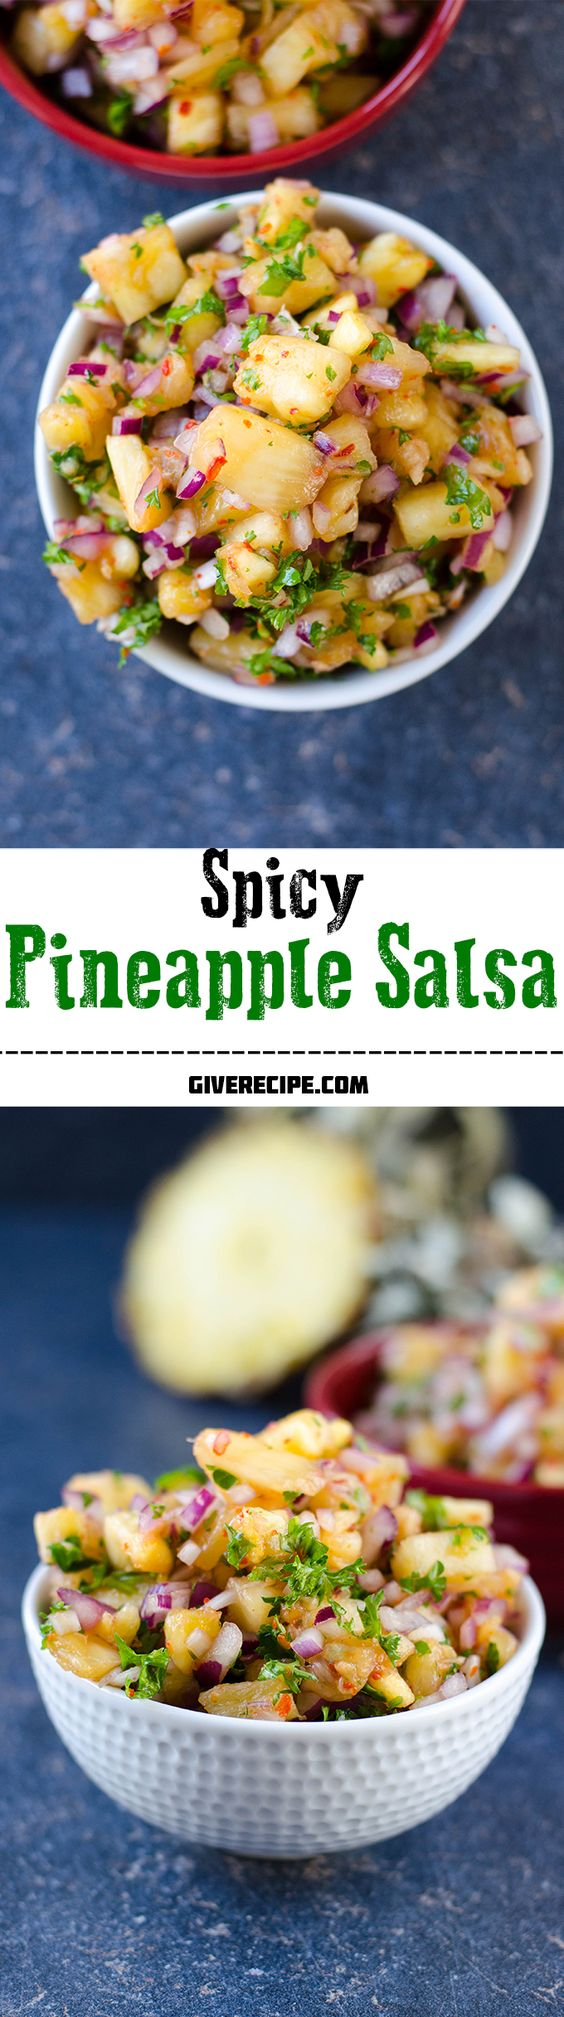 Spicy Pineapple Salsa is bursting with flavors. Sweet, tangy and hot ...